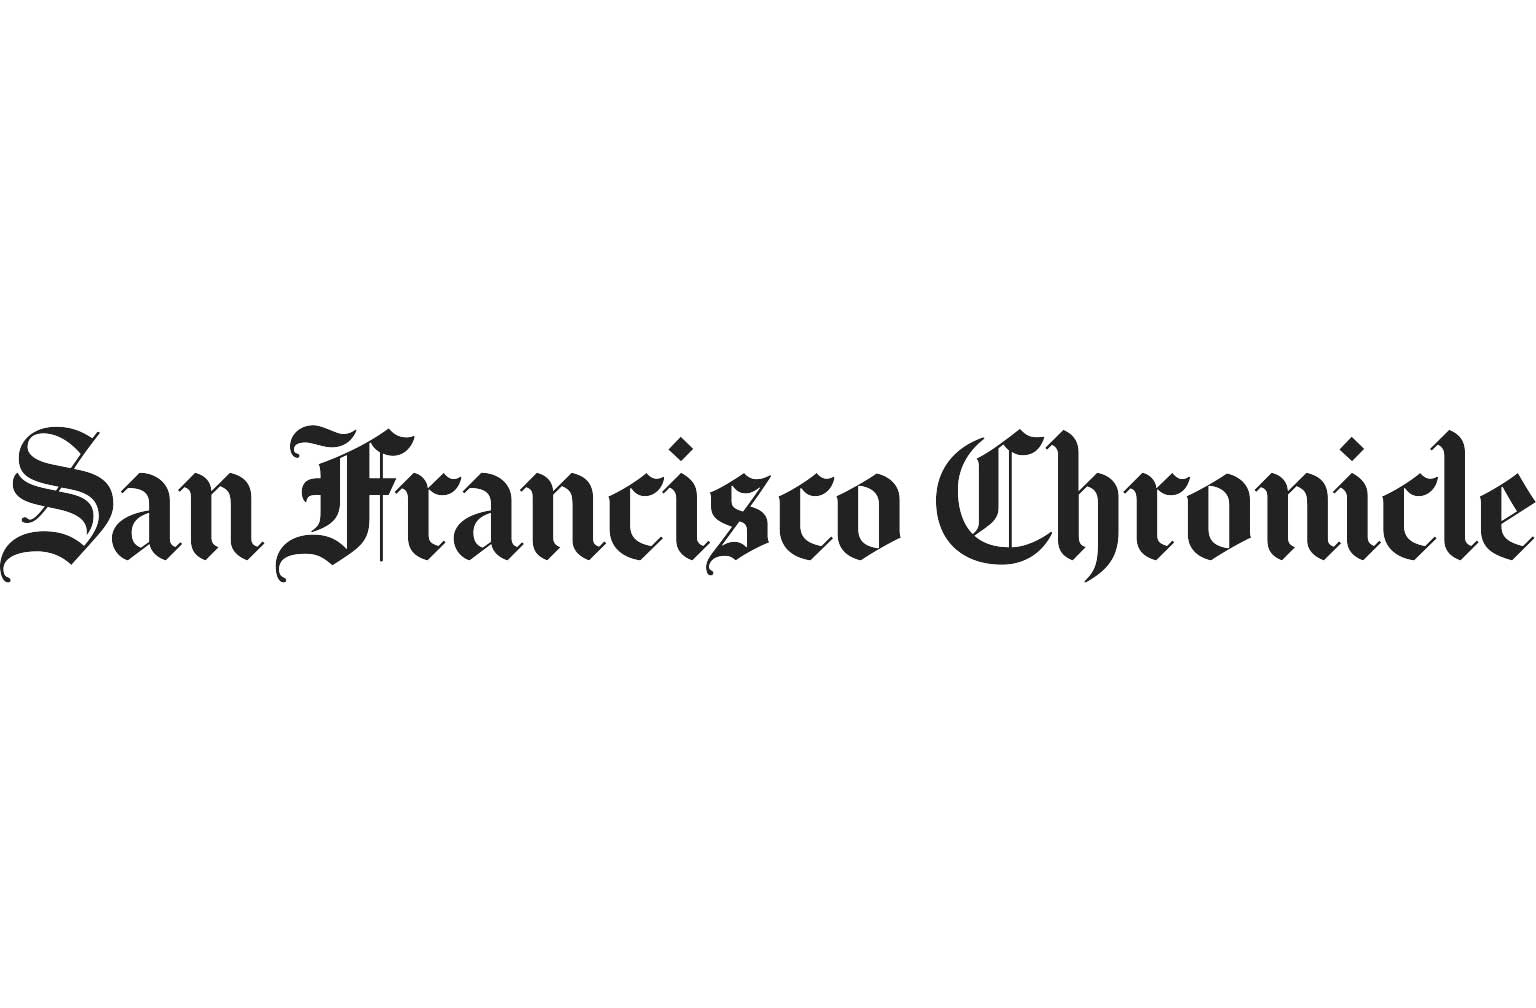 Rethink vaccine position – San Francisco Chronicle, 6/5/2019